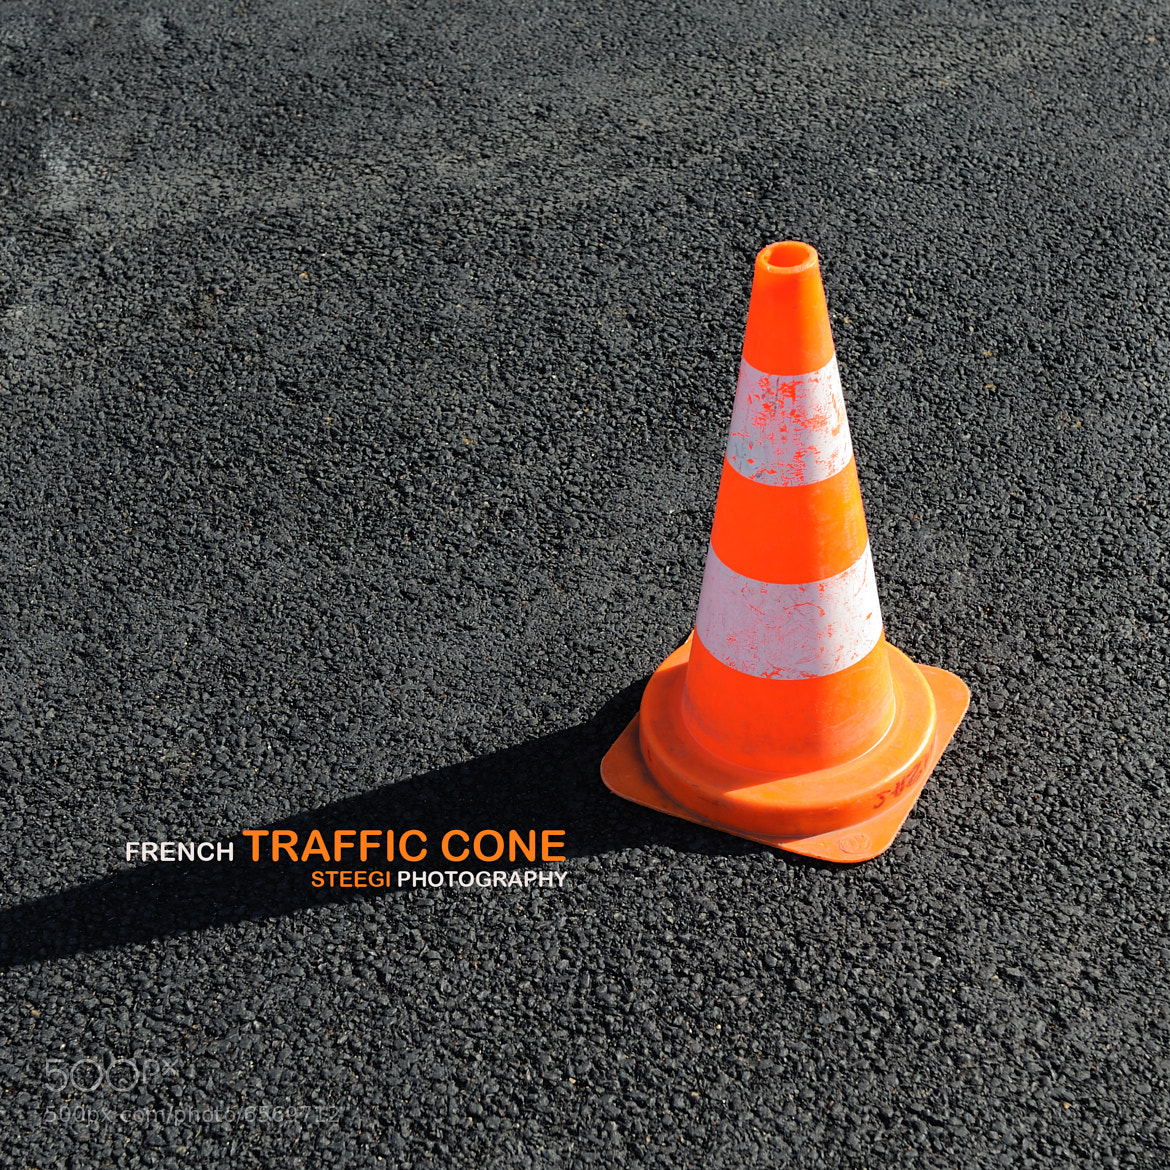 Photograph French Traffic Cone by Andreas Steegmann on 500px